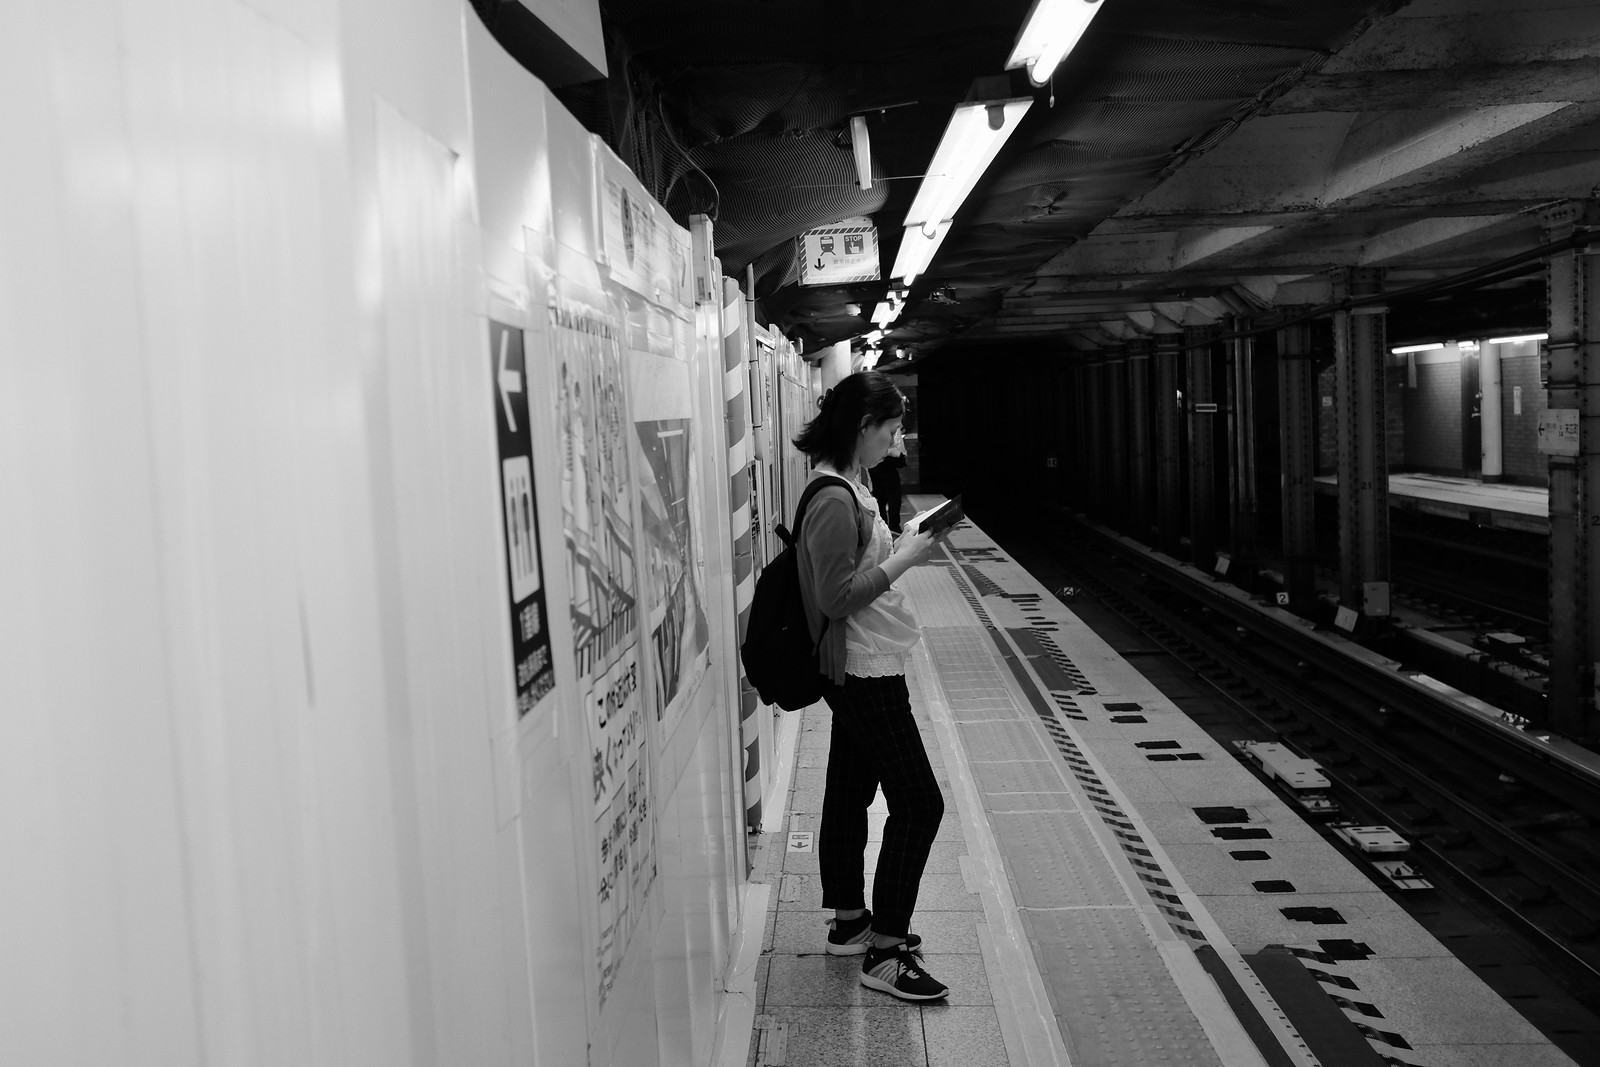 The Suehirocho station taken by FUJIFILM X100S.